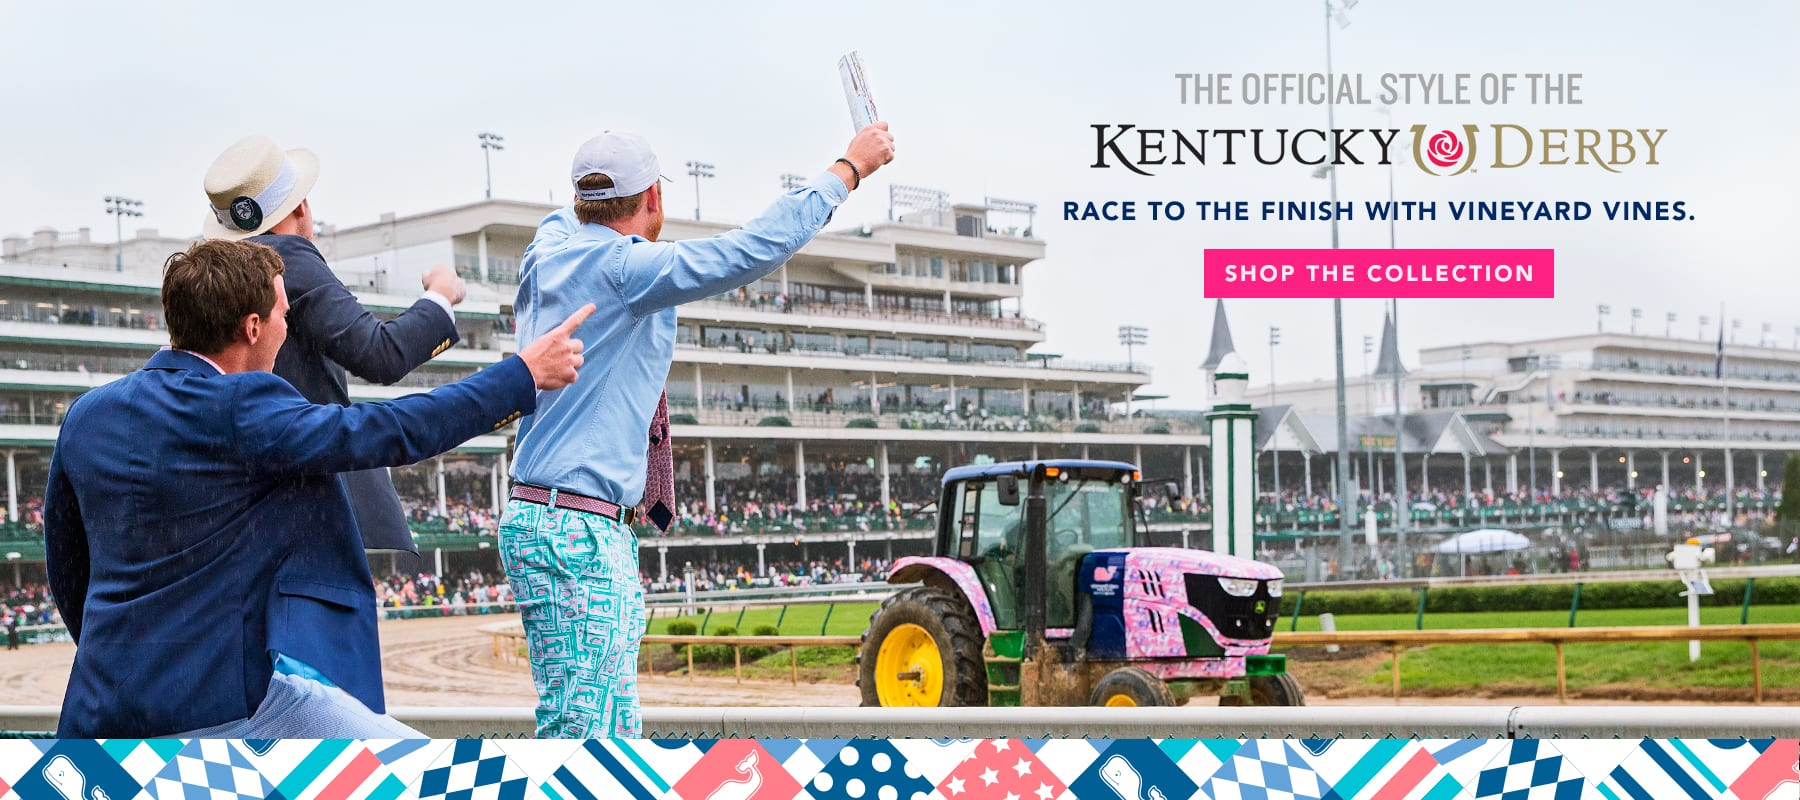 The official style of the Kentucky Derby. Race to the finish with vineyard vines. Shop The Collection.